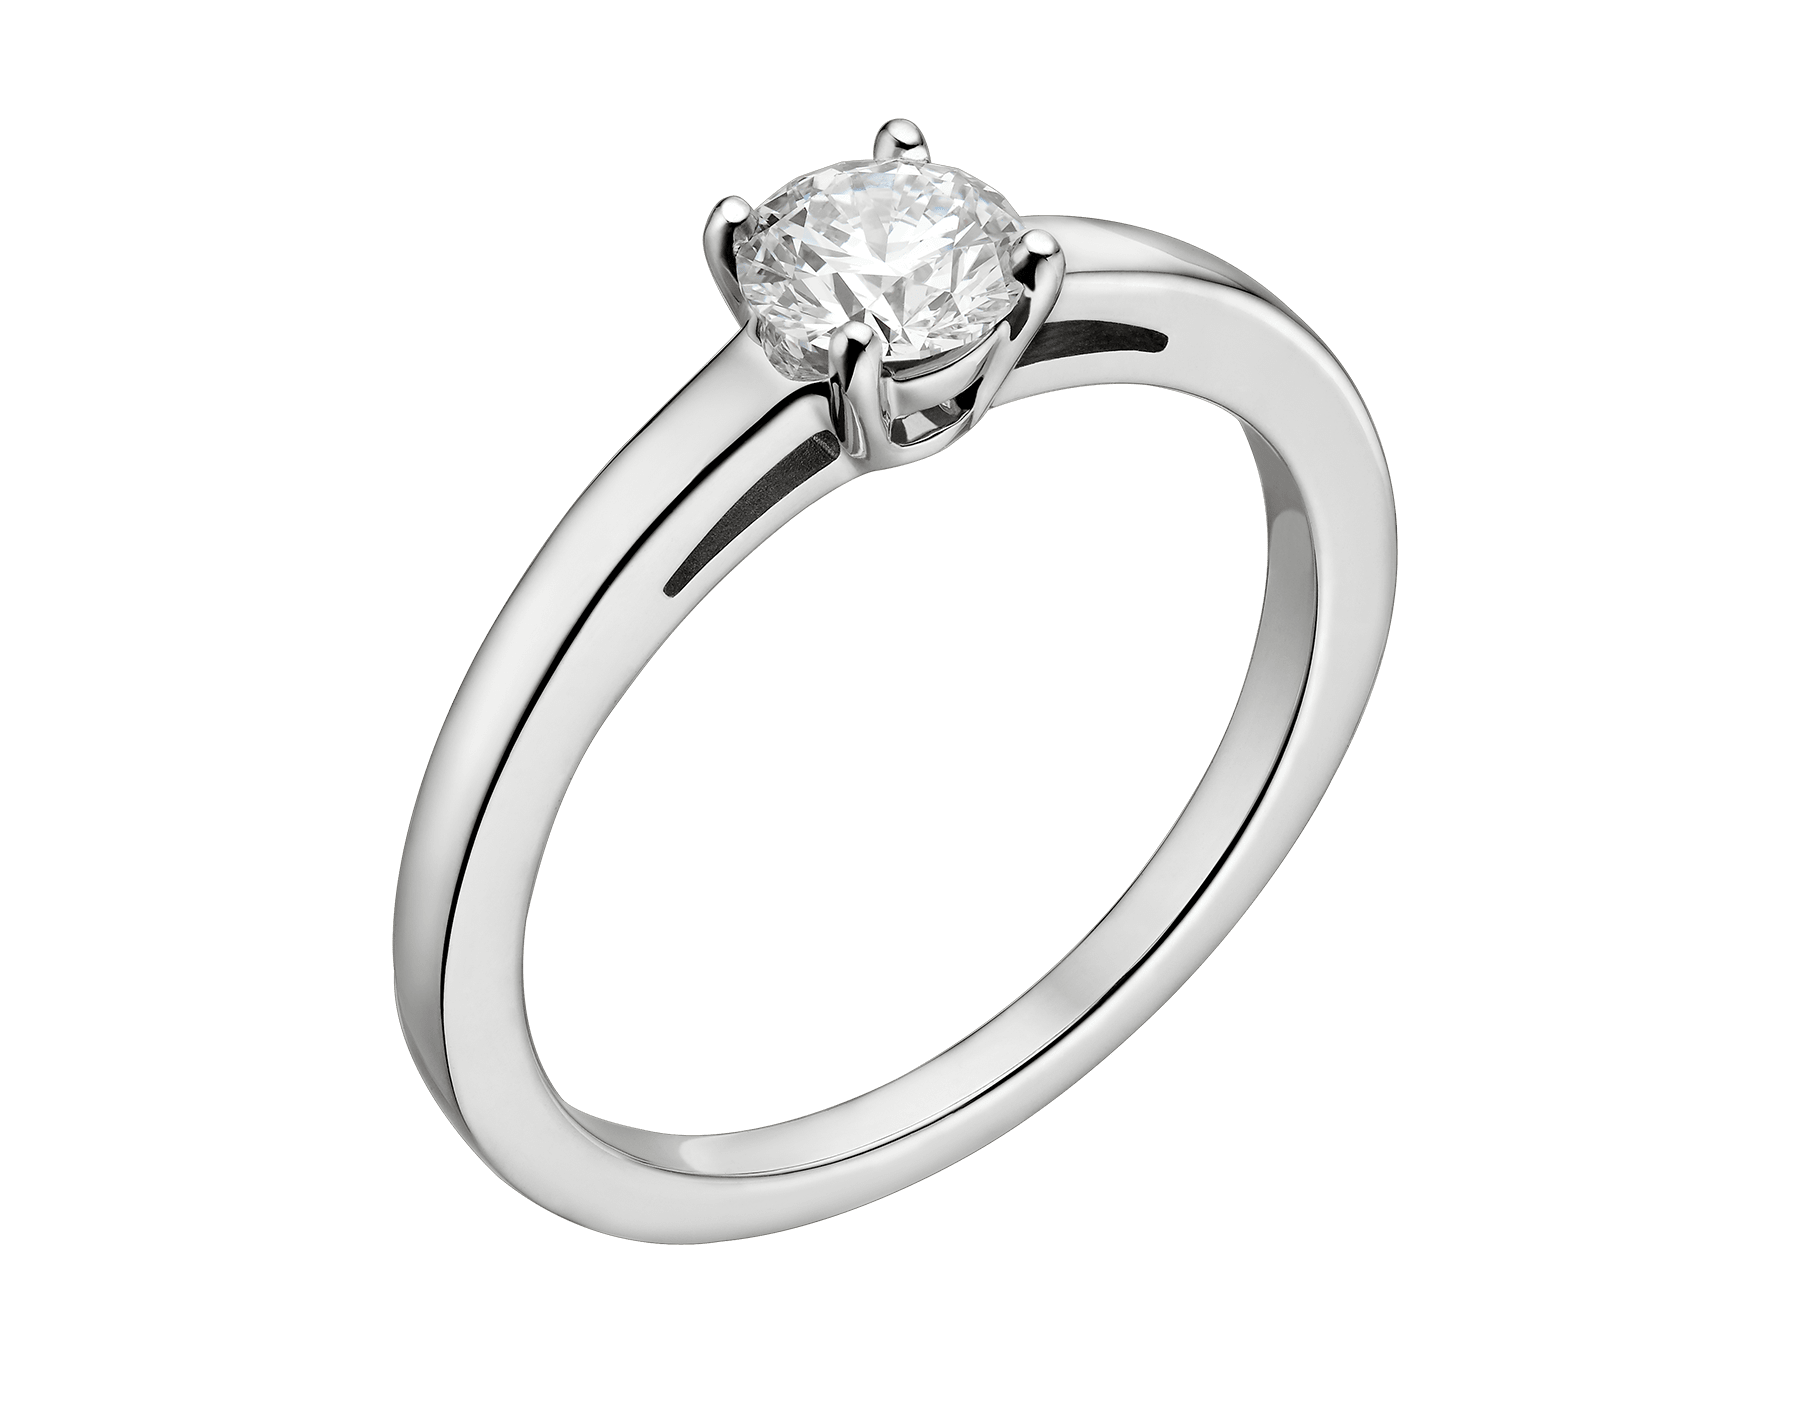 Griffe solitaire ring in platinum with round brilliant cut diamond. Available from 0.30 ct. A classic setting that allows the beauty and the pureness of the solitaire diamond to assert itself. 327457 image 1